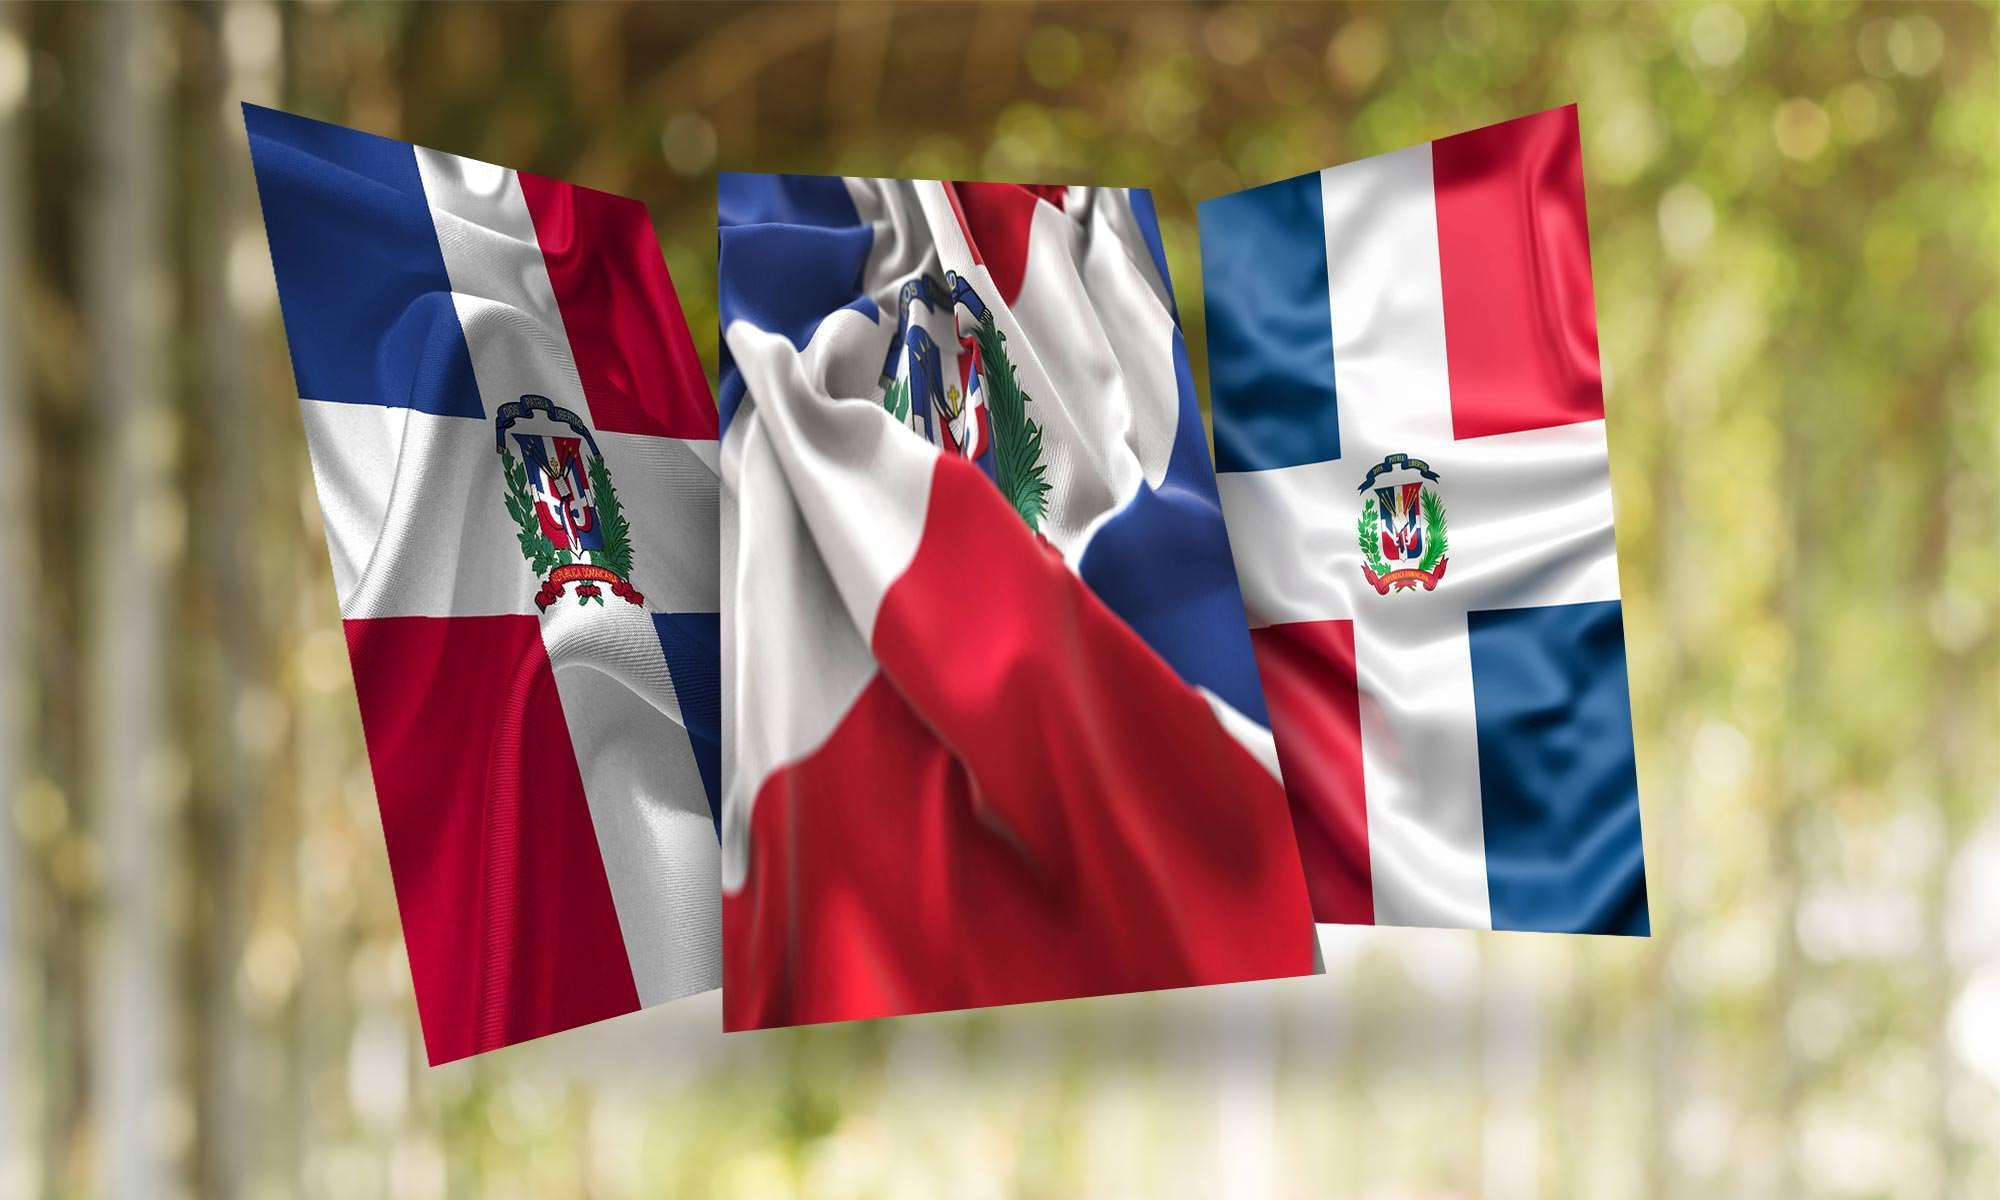 2000x1200 Dominican Republic Flag Wallpaper for Android - APK Download